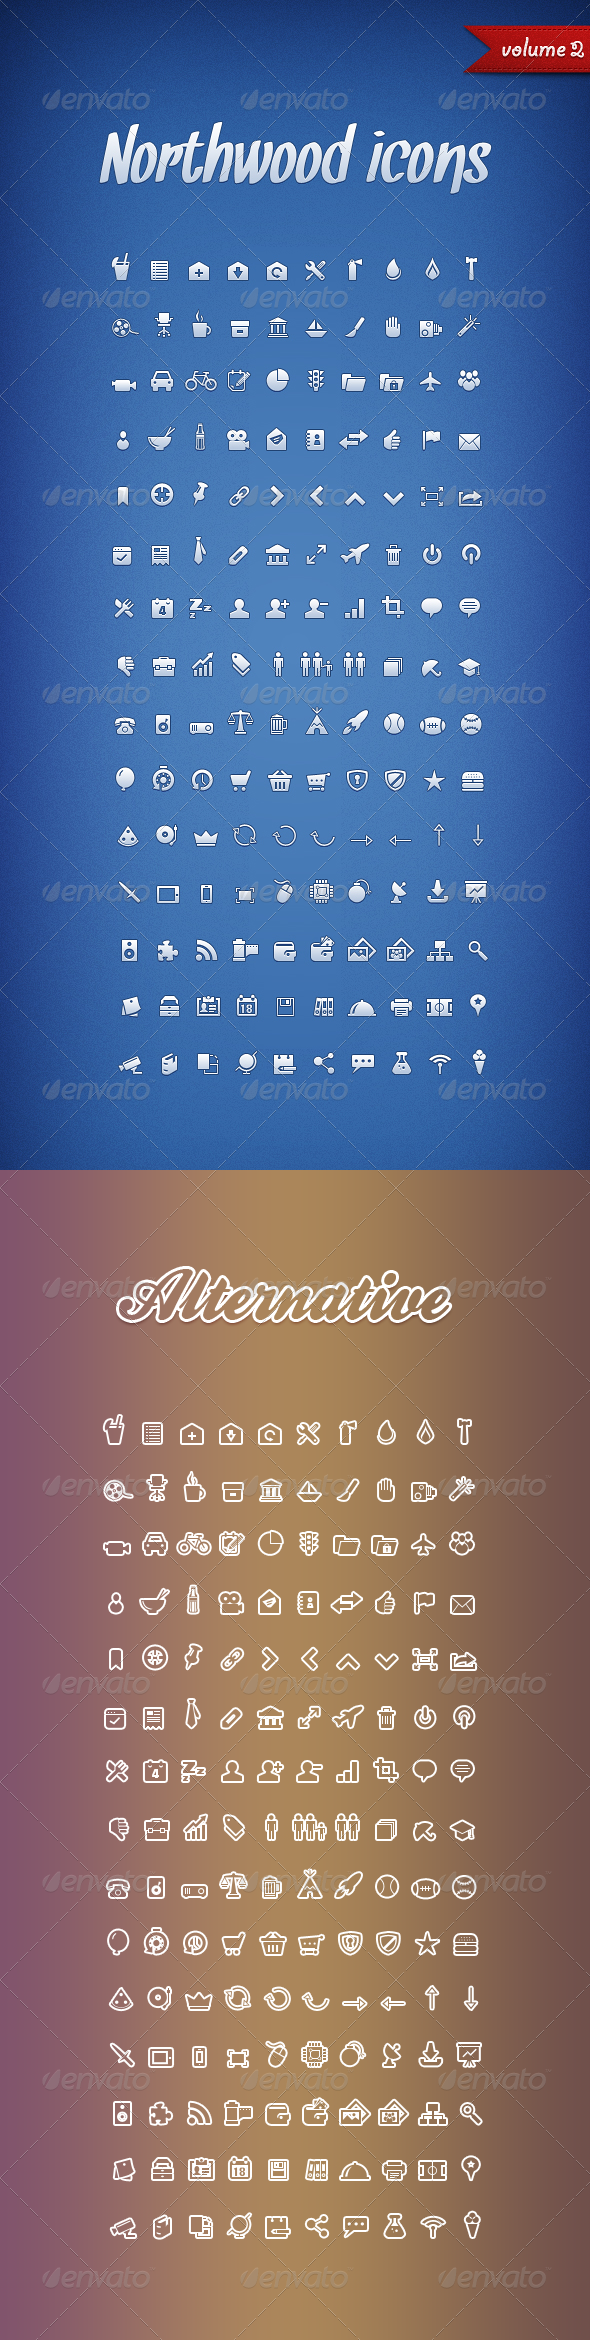 Northwood Icons Volume 2 - Web Icons